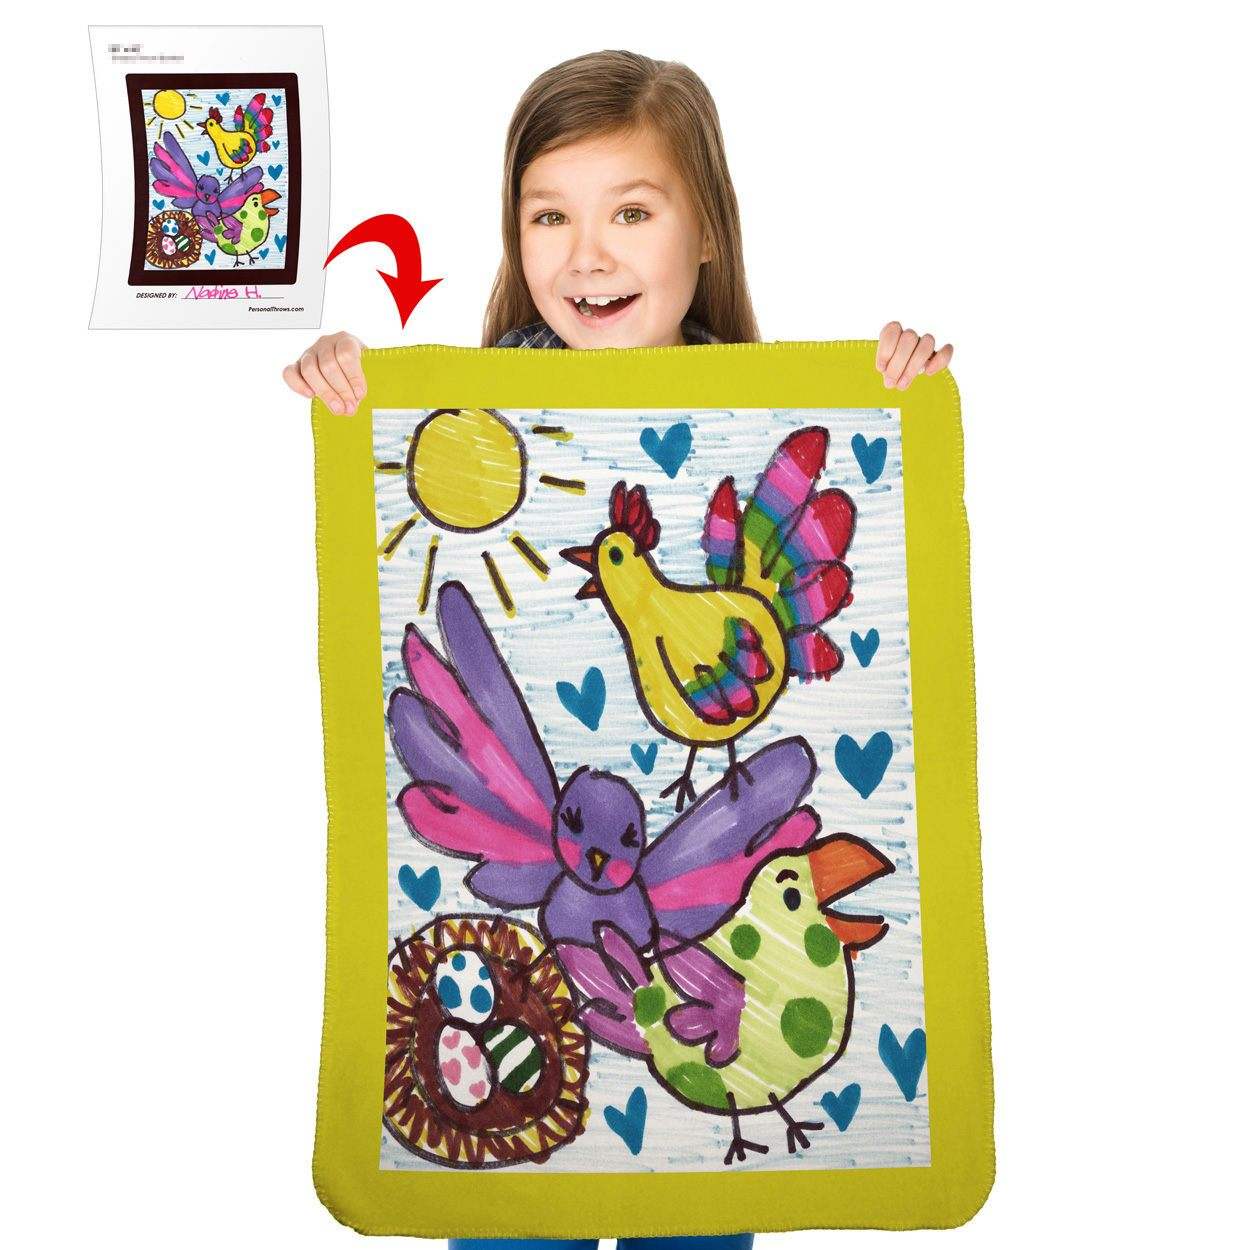 Turn Your Child's Drawing into a 30″ x 40″ Polar Fleece Mini Blanket